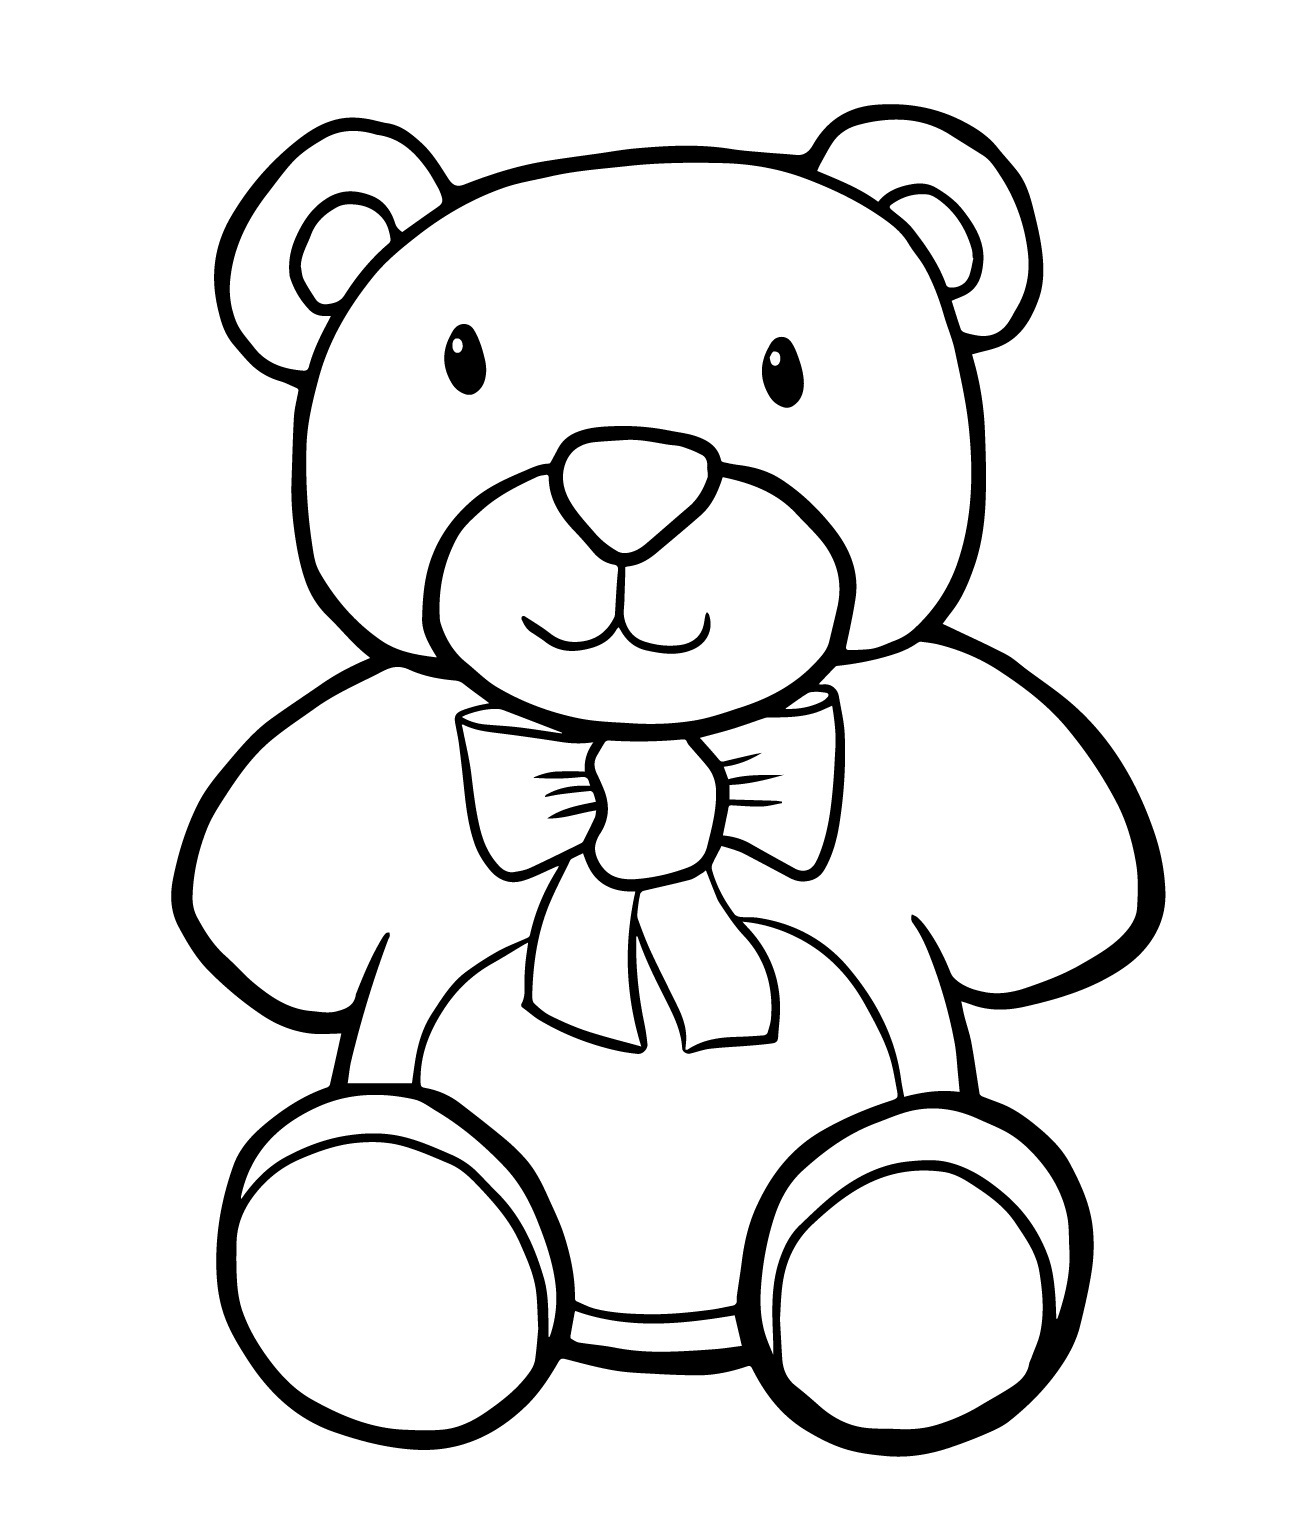 stuffed animal coloring pages stuffed animal coloring pages timeless miraclecom stuffed coloring pages animal